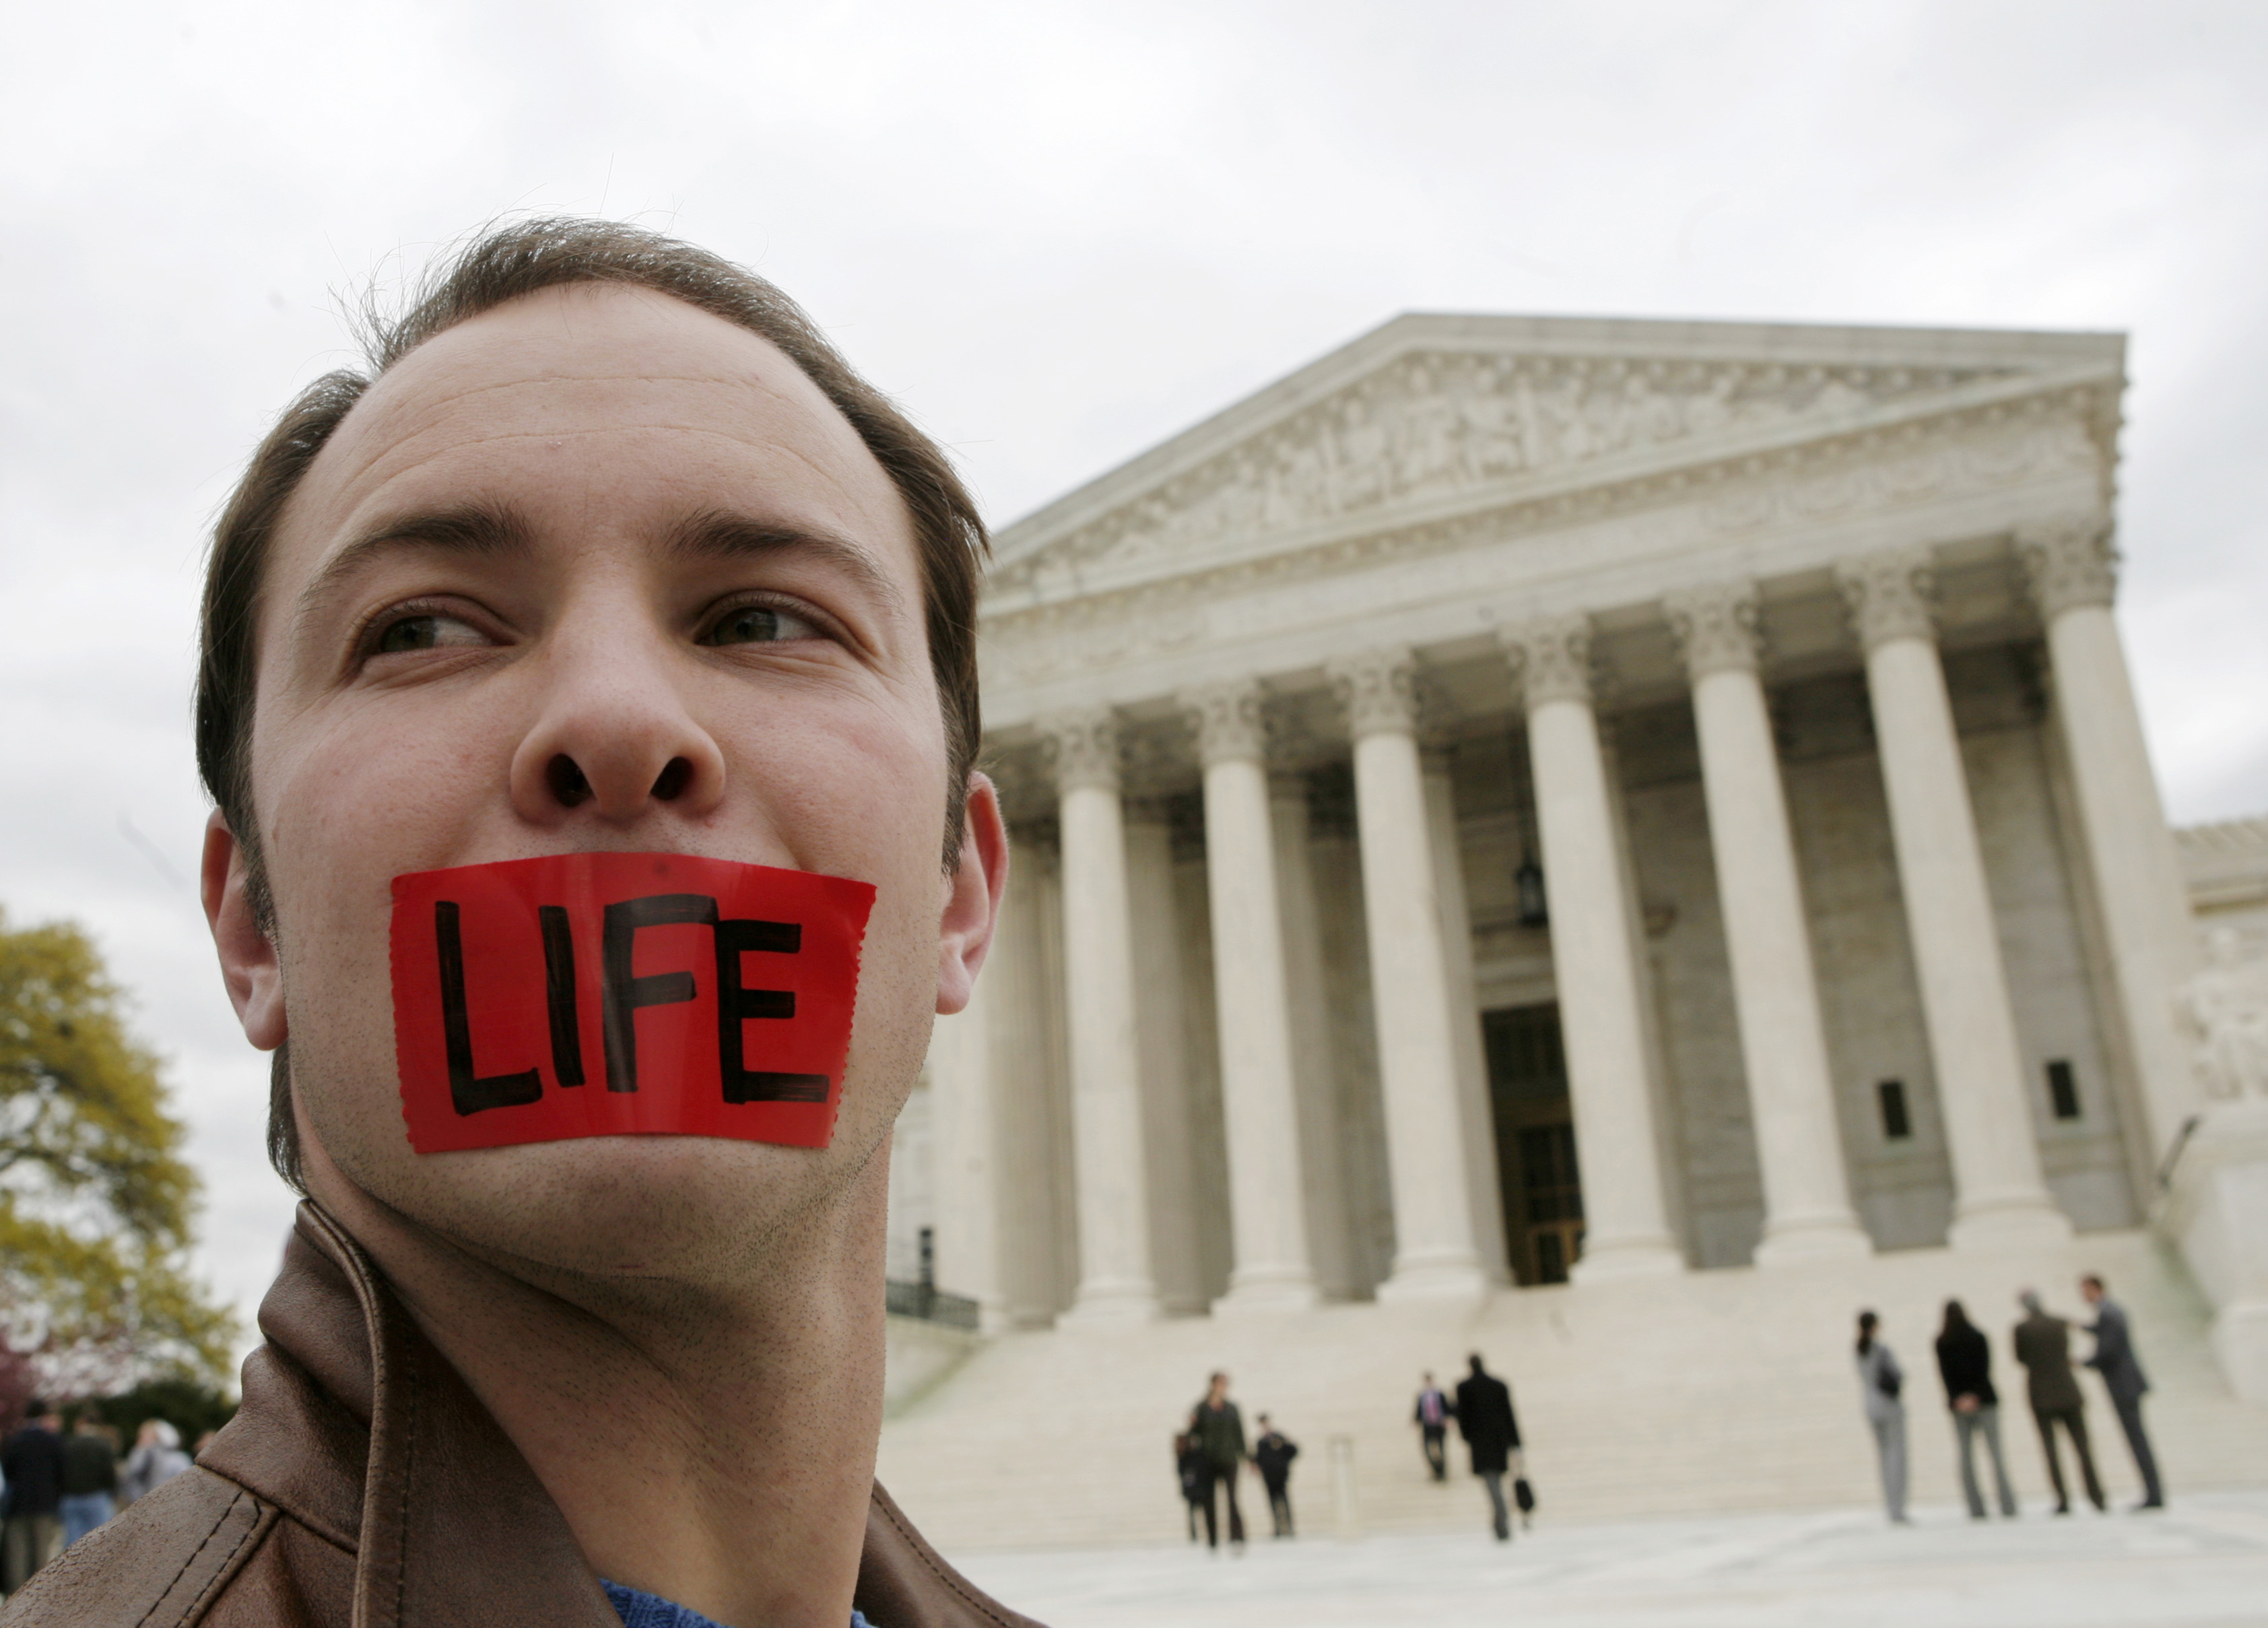 Pro-life supporter Josh Alcorn demonstrates in front of the Supreme Court after the Court upheld the first nationwide ban on a specific abortion procedure, in Washington, April 18, 2007. REUTERS/Jim Young   (UNITED STATES)